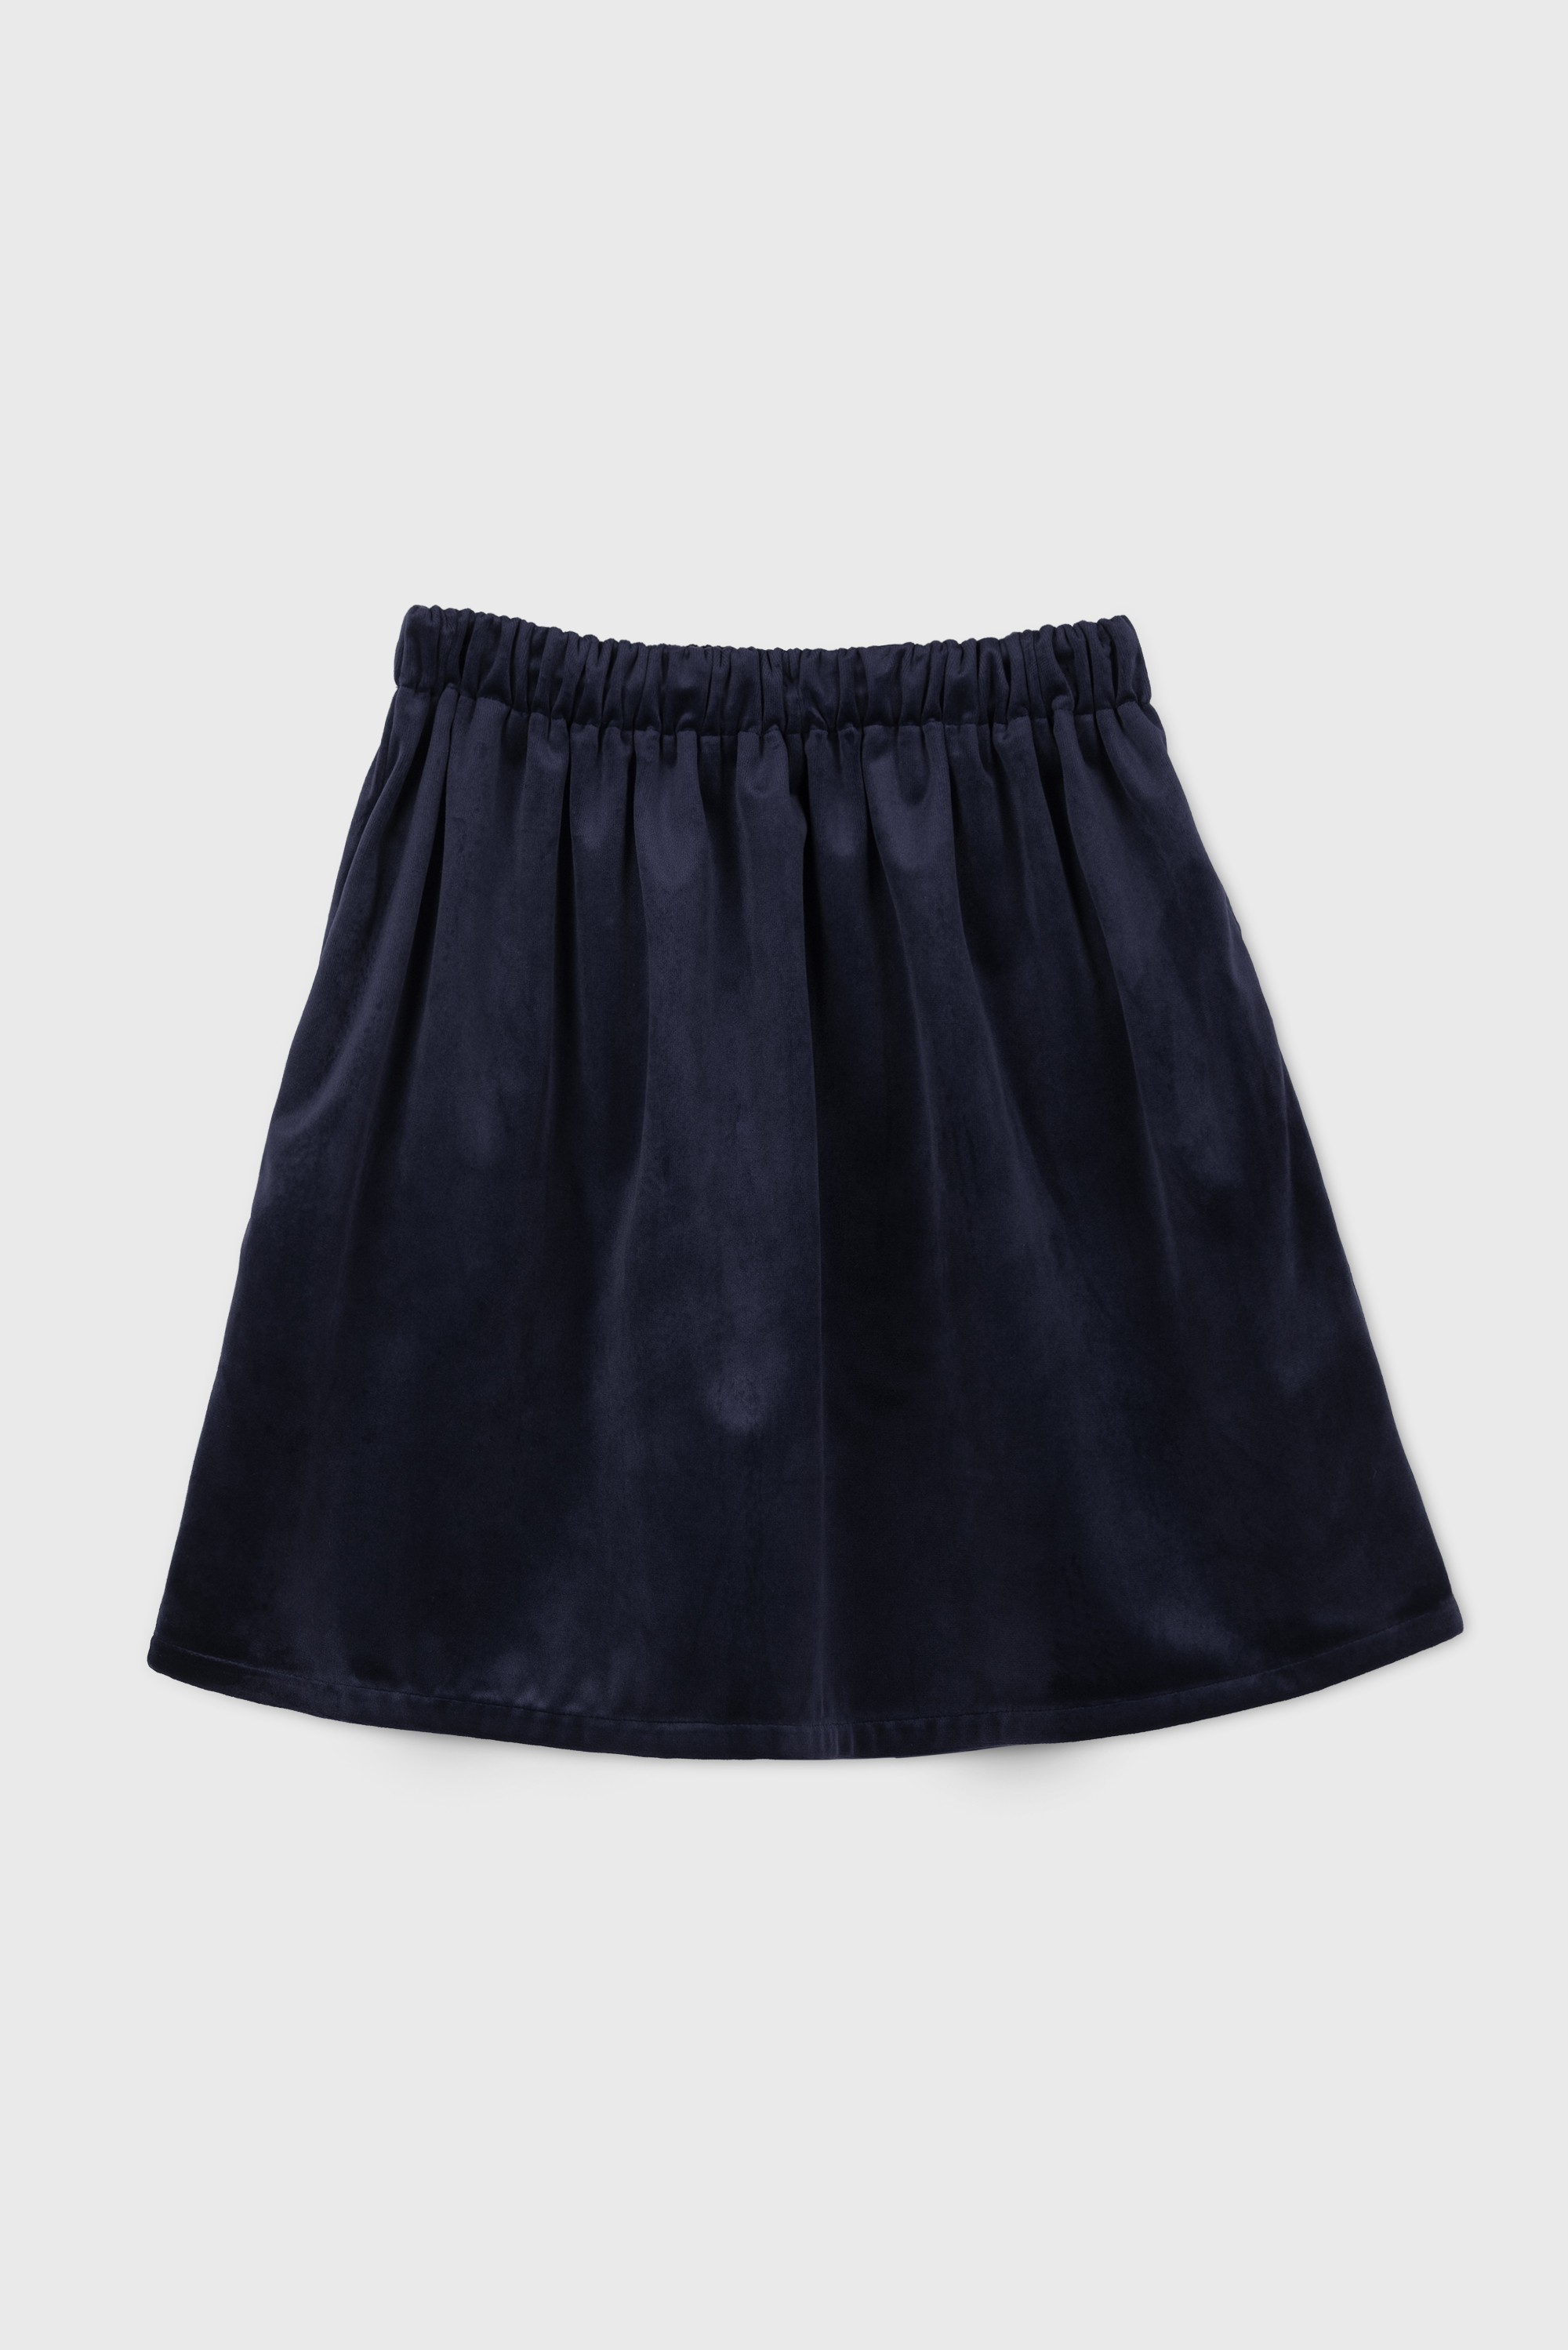 DARK BLUE VELVET SHIRRED SKIRT